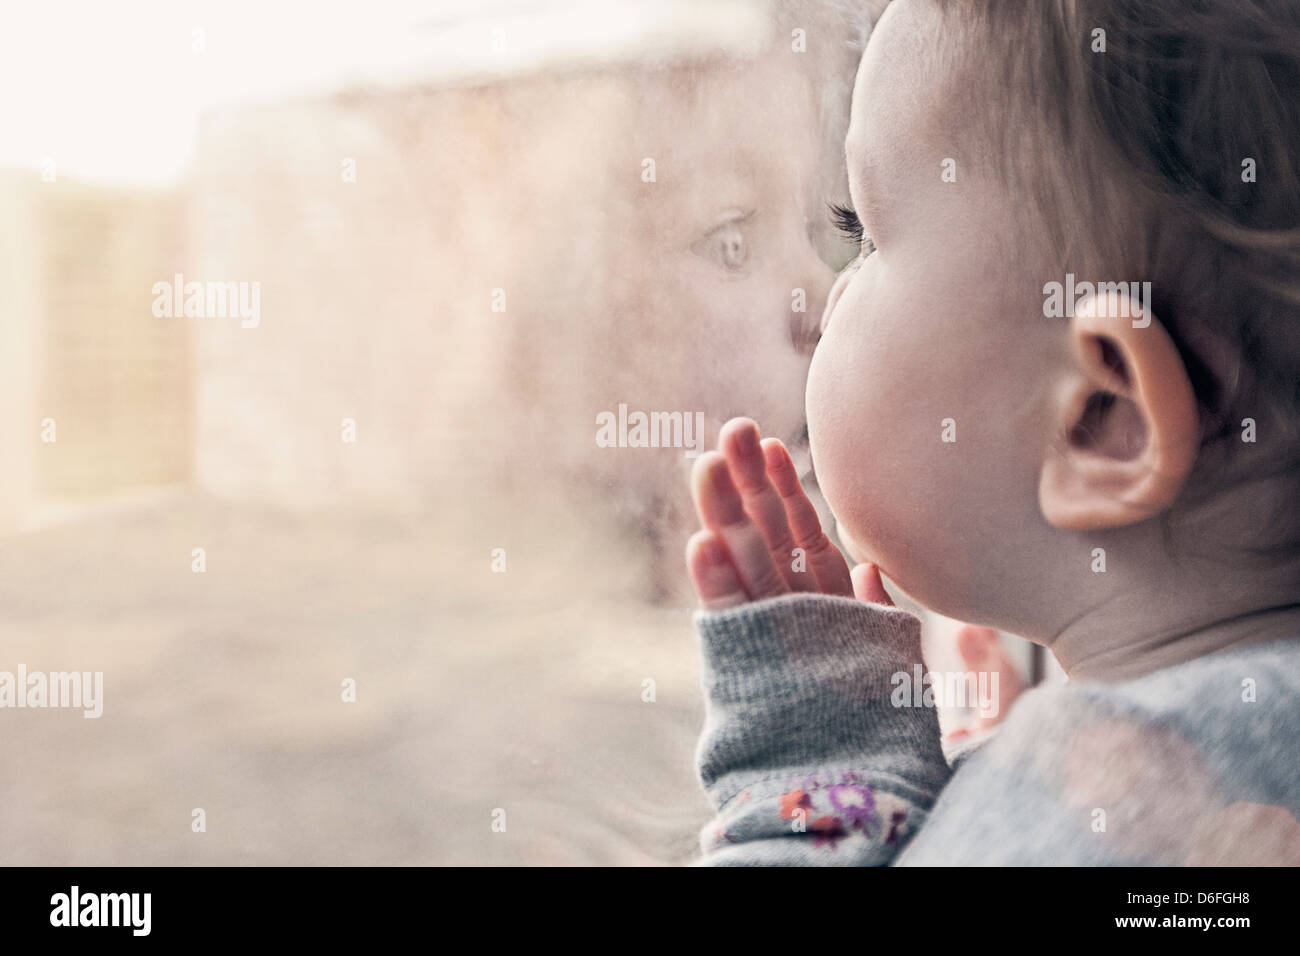 Cute infant girl looking out window Photo Stock